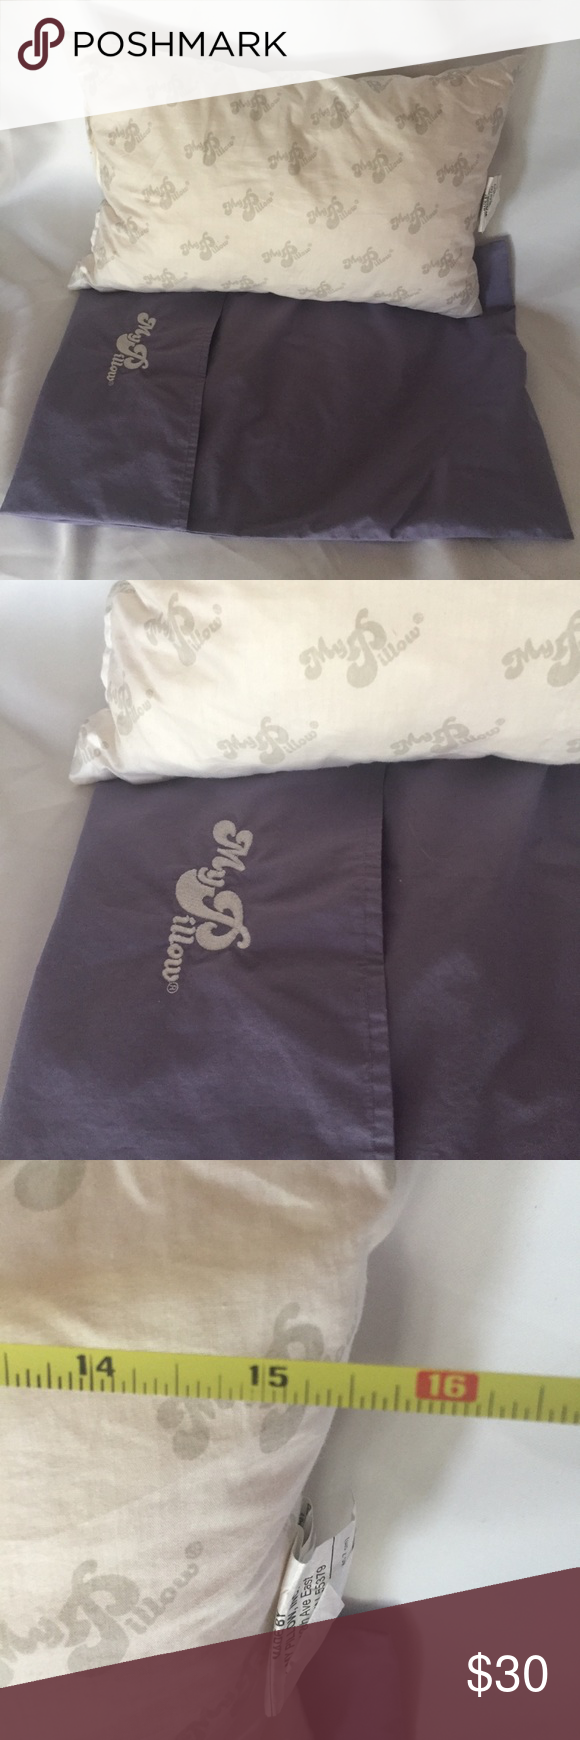 new my pillow go anywhere pillow with